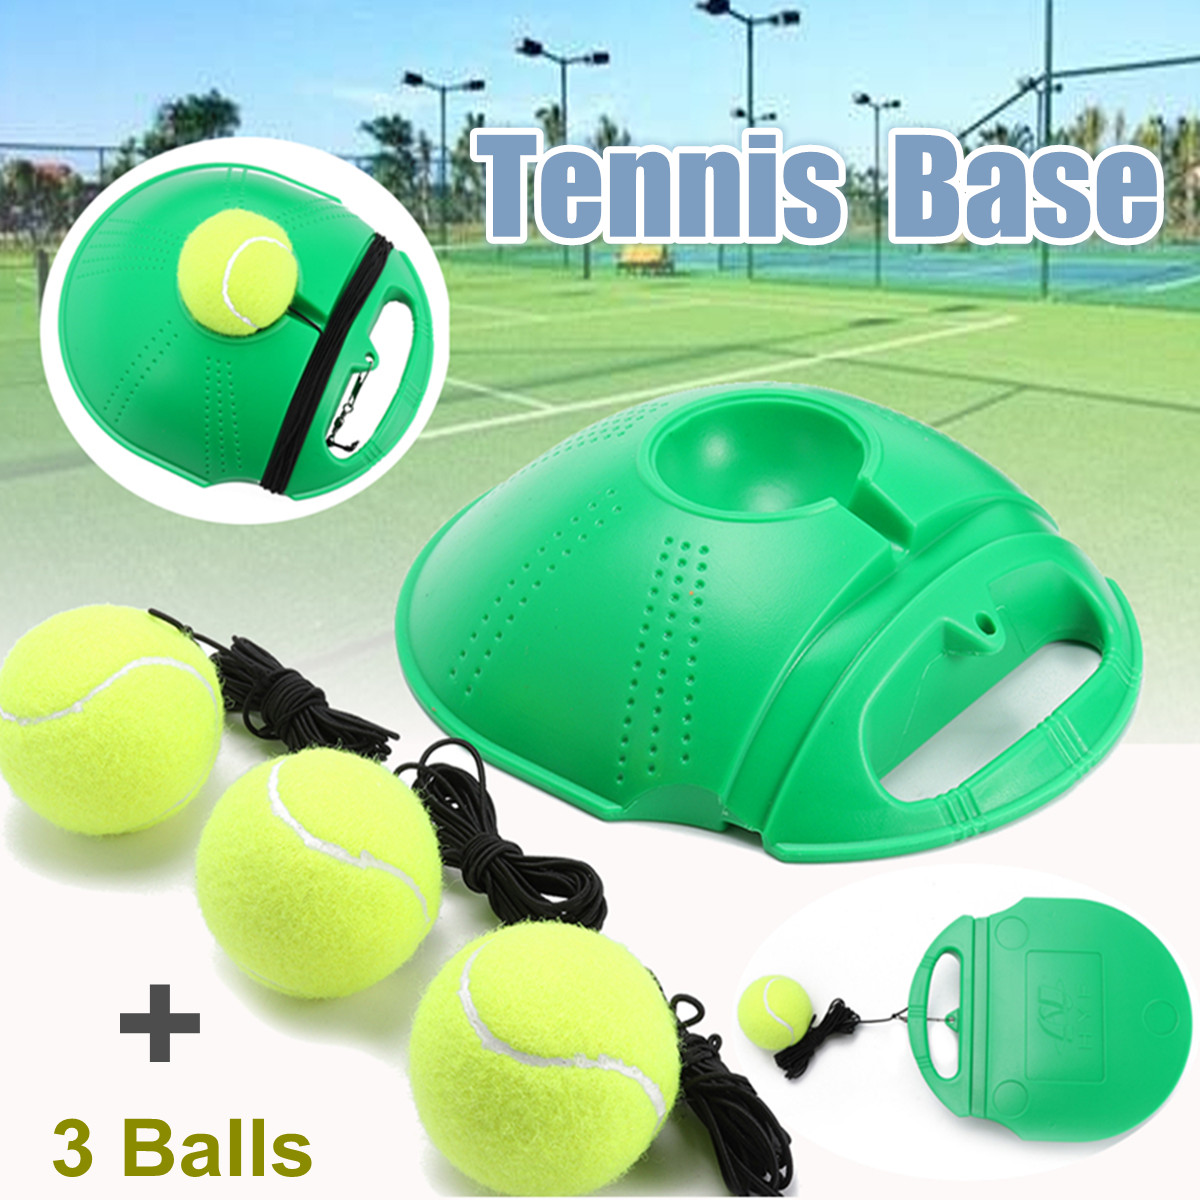 Single Tennis Trainer Self-study Tennis Training Tool Rebound Balls Baseboard Tools Tennis Practice Portable With 3 Balls